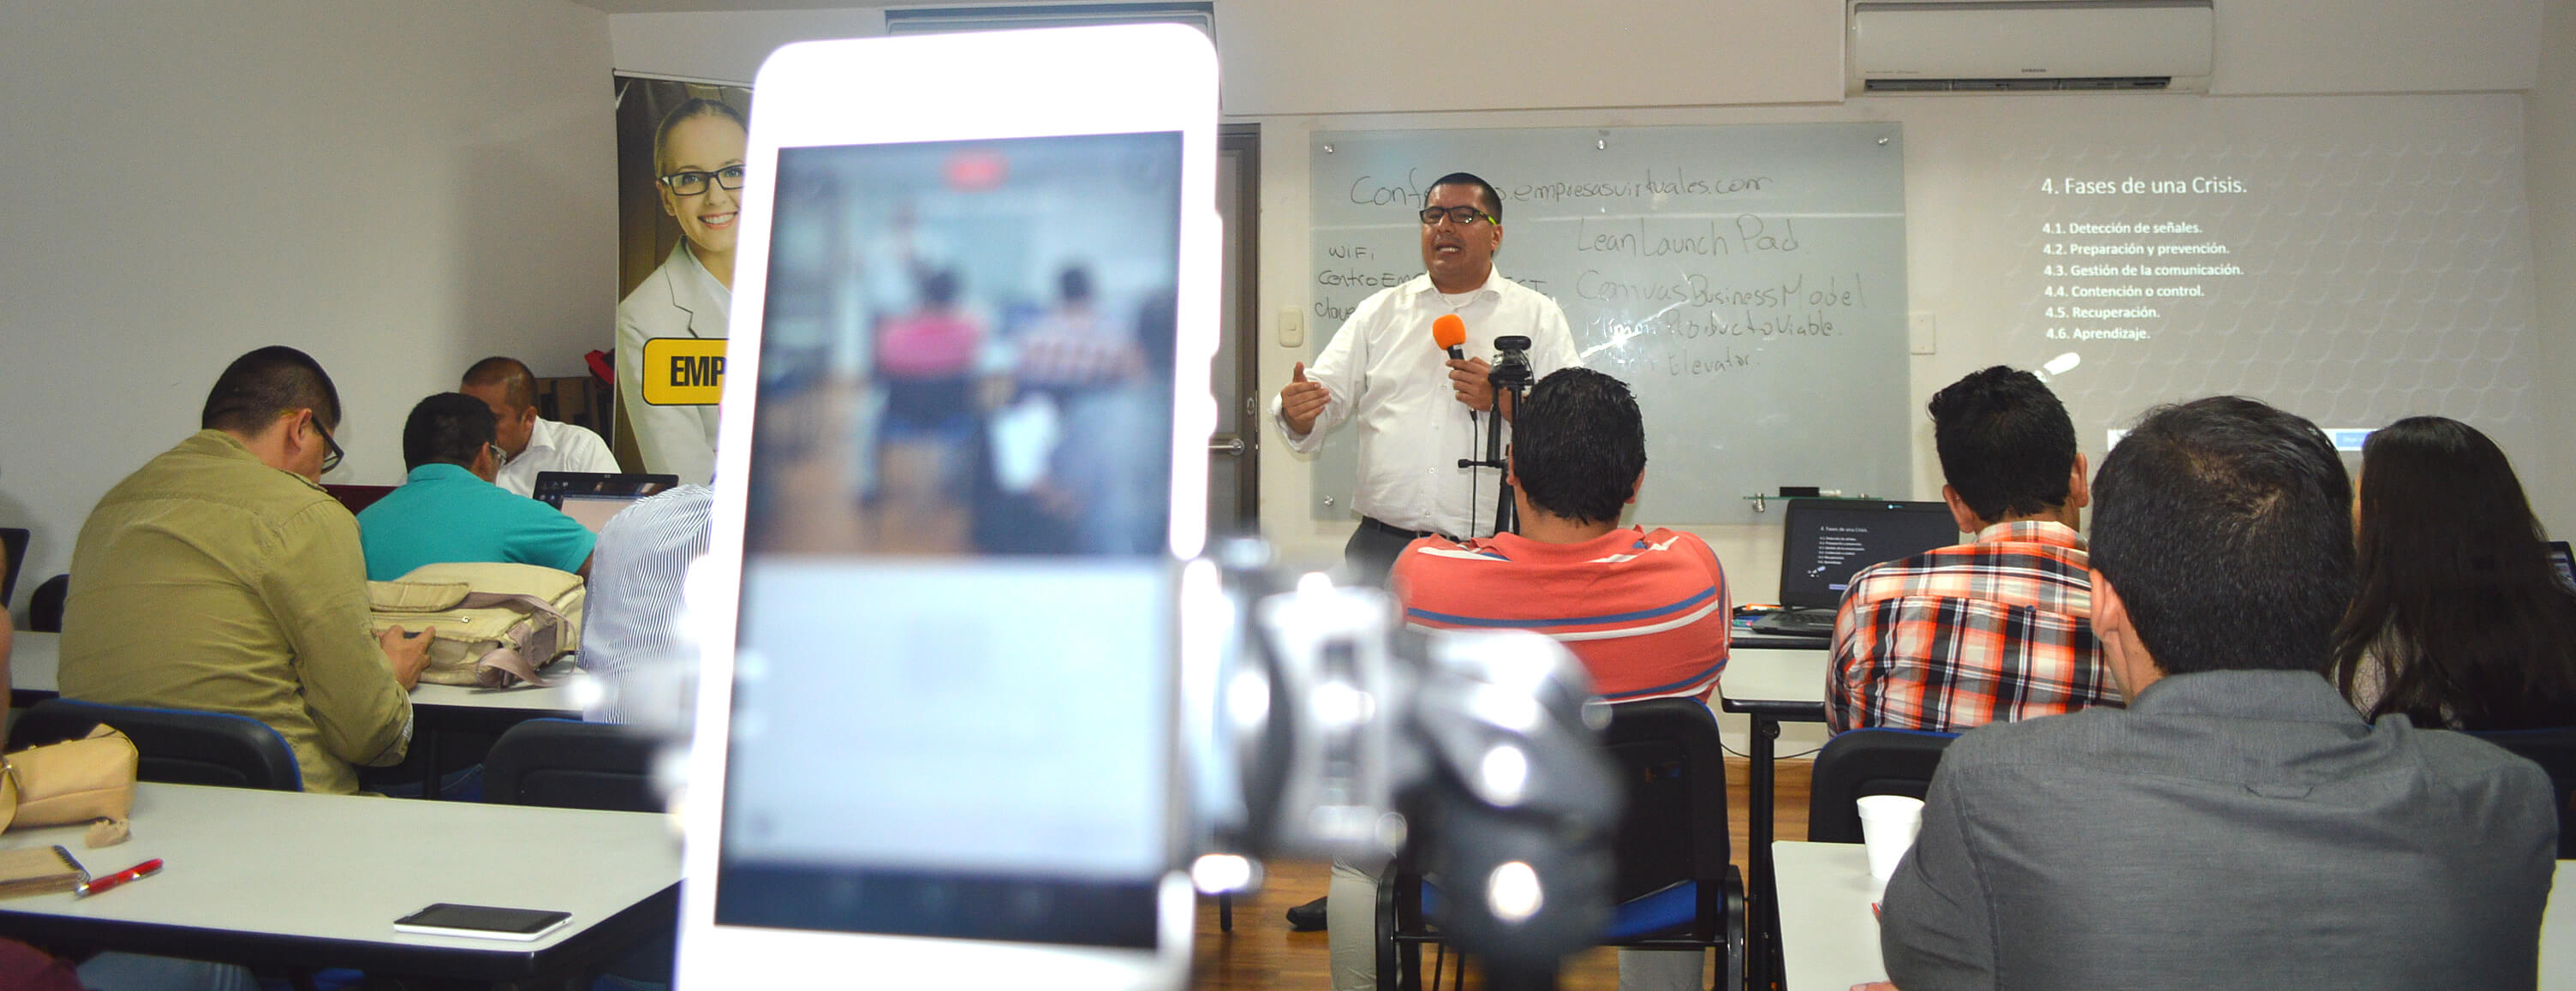 Capacitación en Marketing Digital dictada por Oscar Valbuena para la Cámara de Comercio de Ibagué